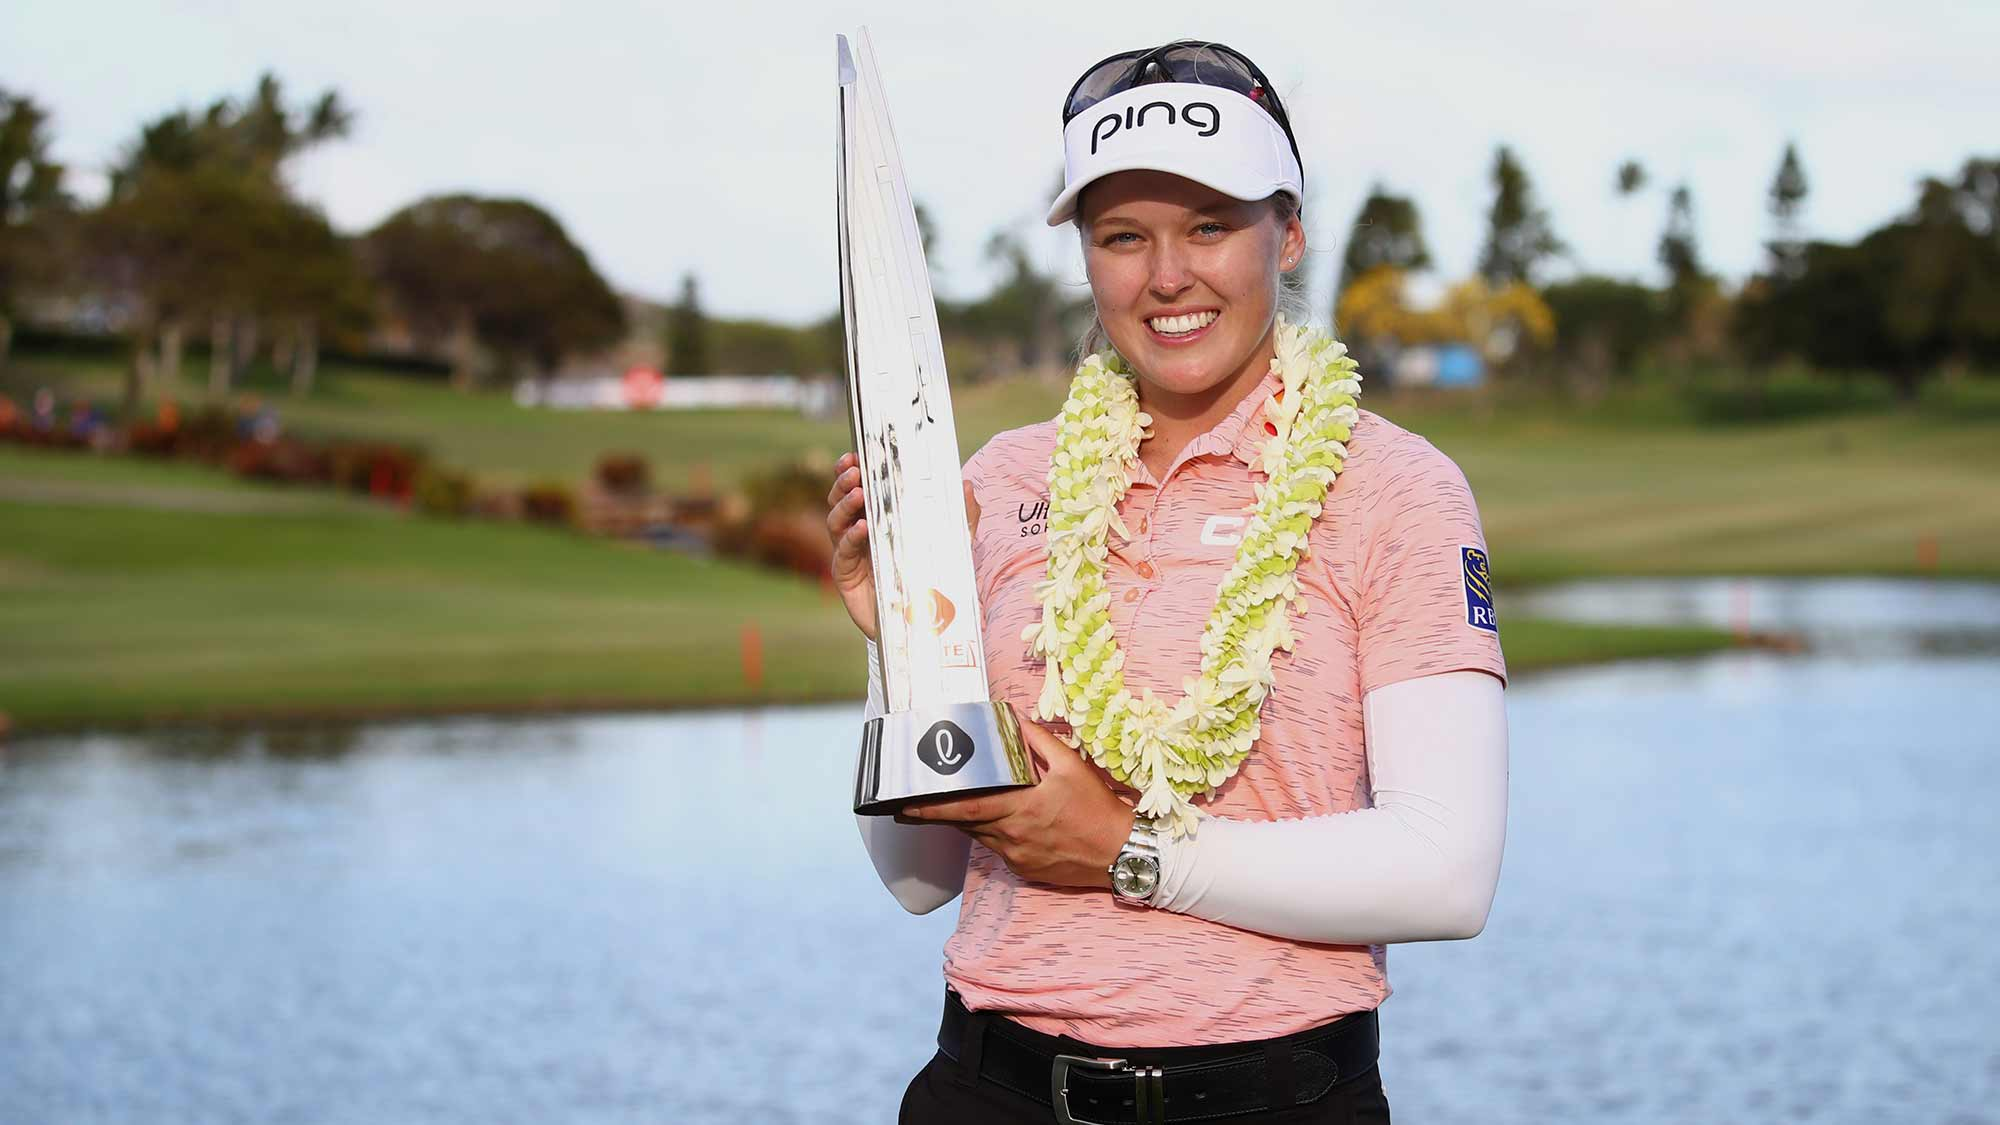 Brooke Henderson poses with the trophy after winning the LOTTE Championship at Ko Olina Golf Club on April 21, 2019 in Kapolei, Hawaii